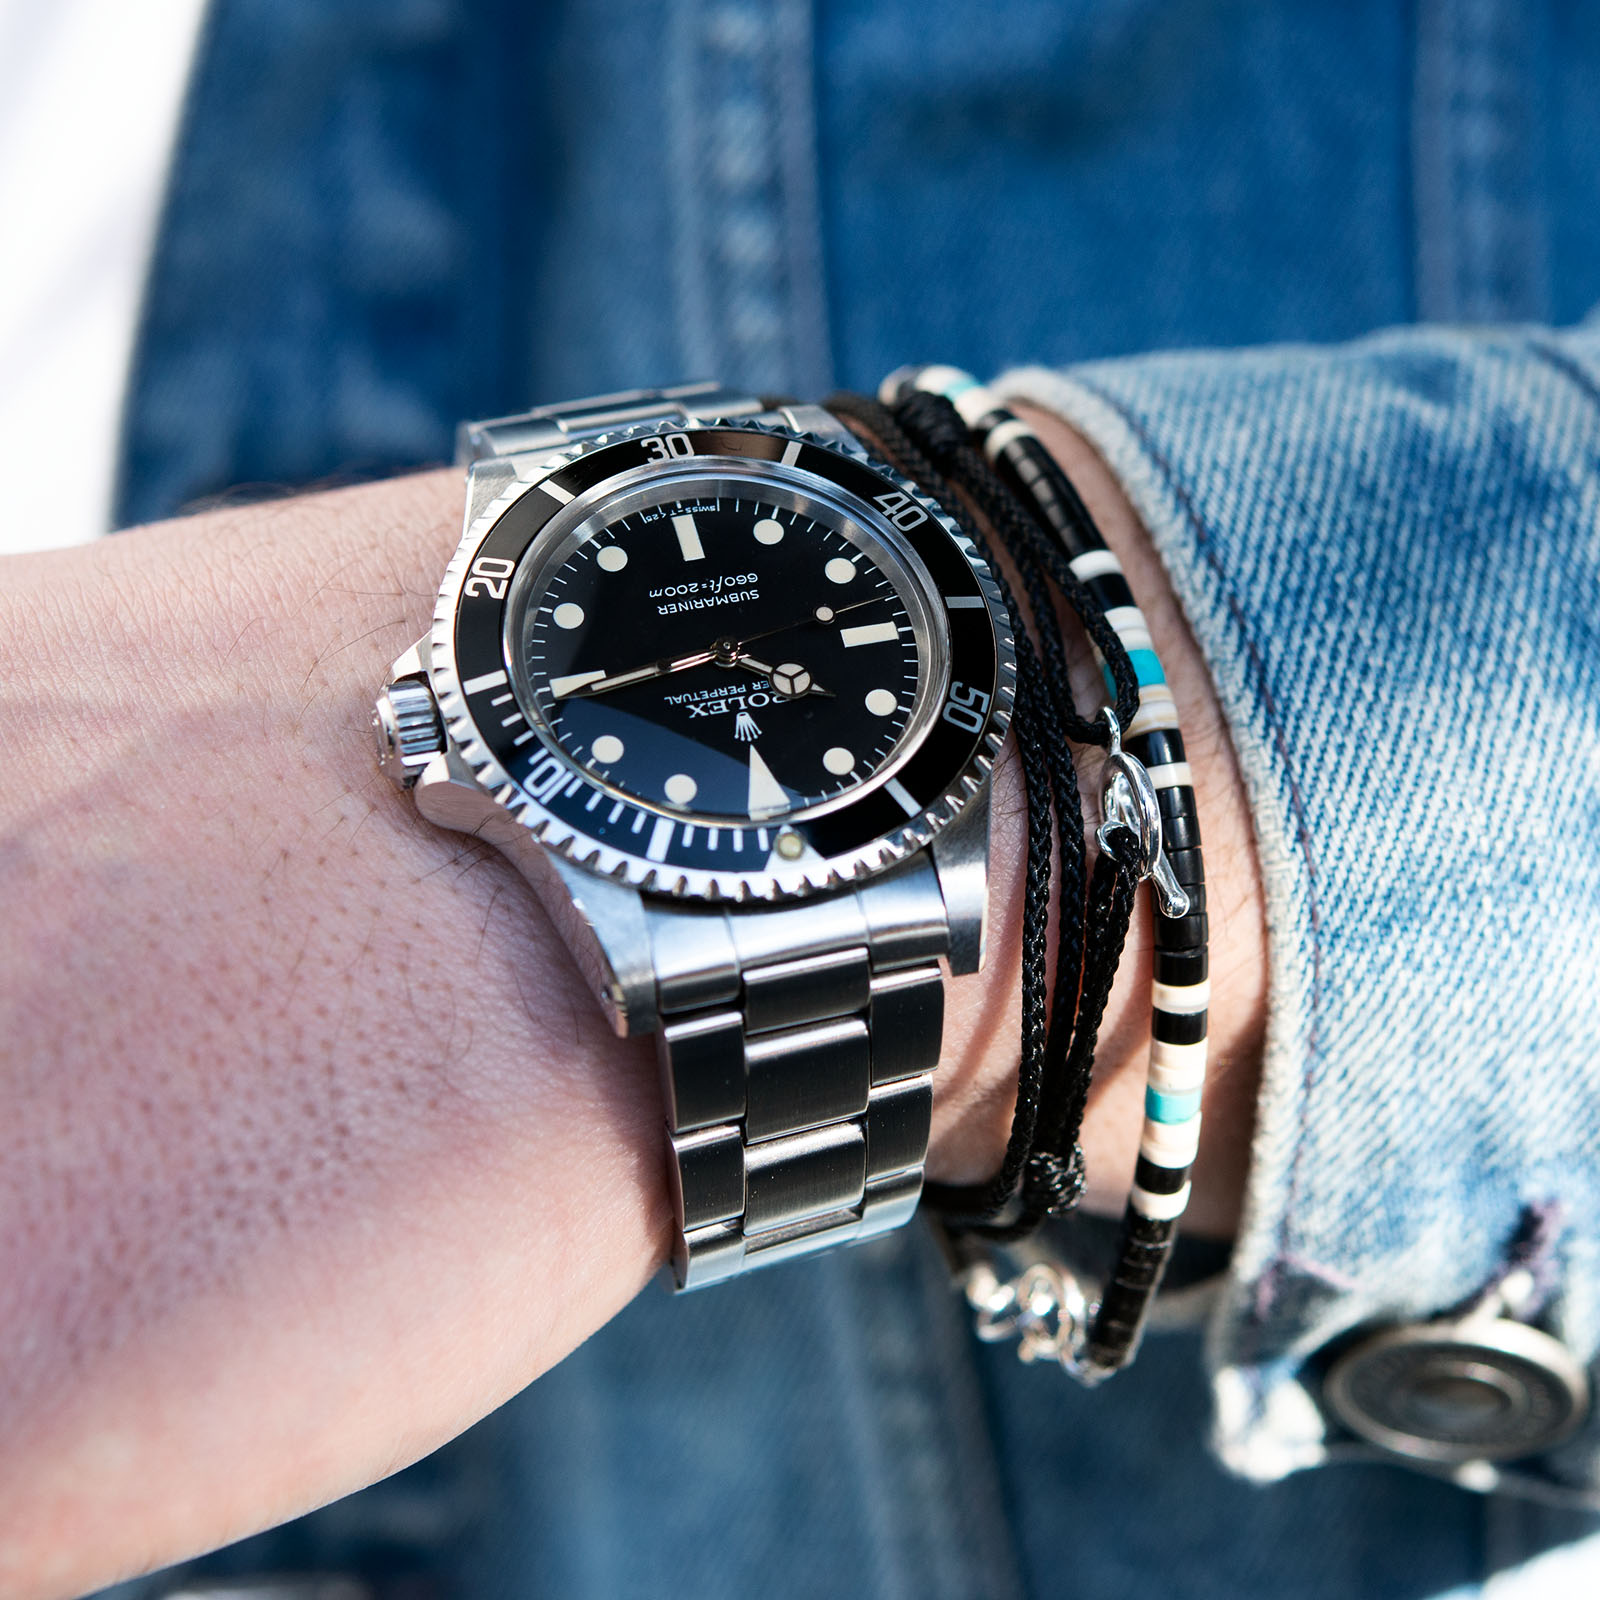 Vintage Rolex 5513 Submariner Love - Article at Bulang and Sons - Maxi Dial Mk5